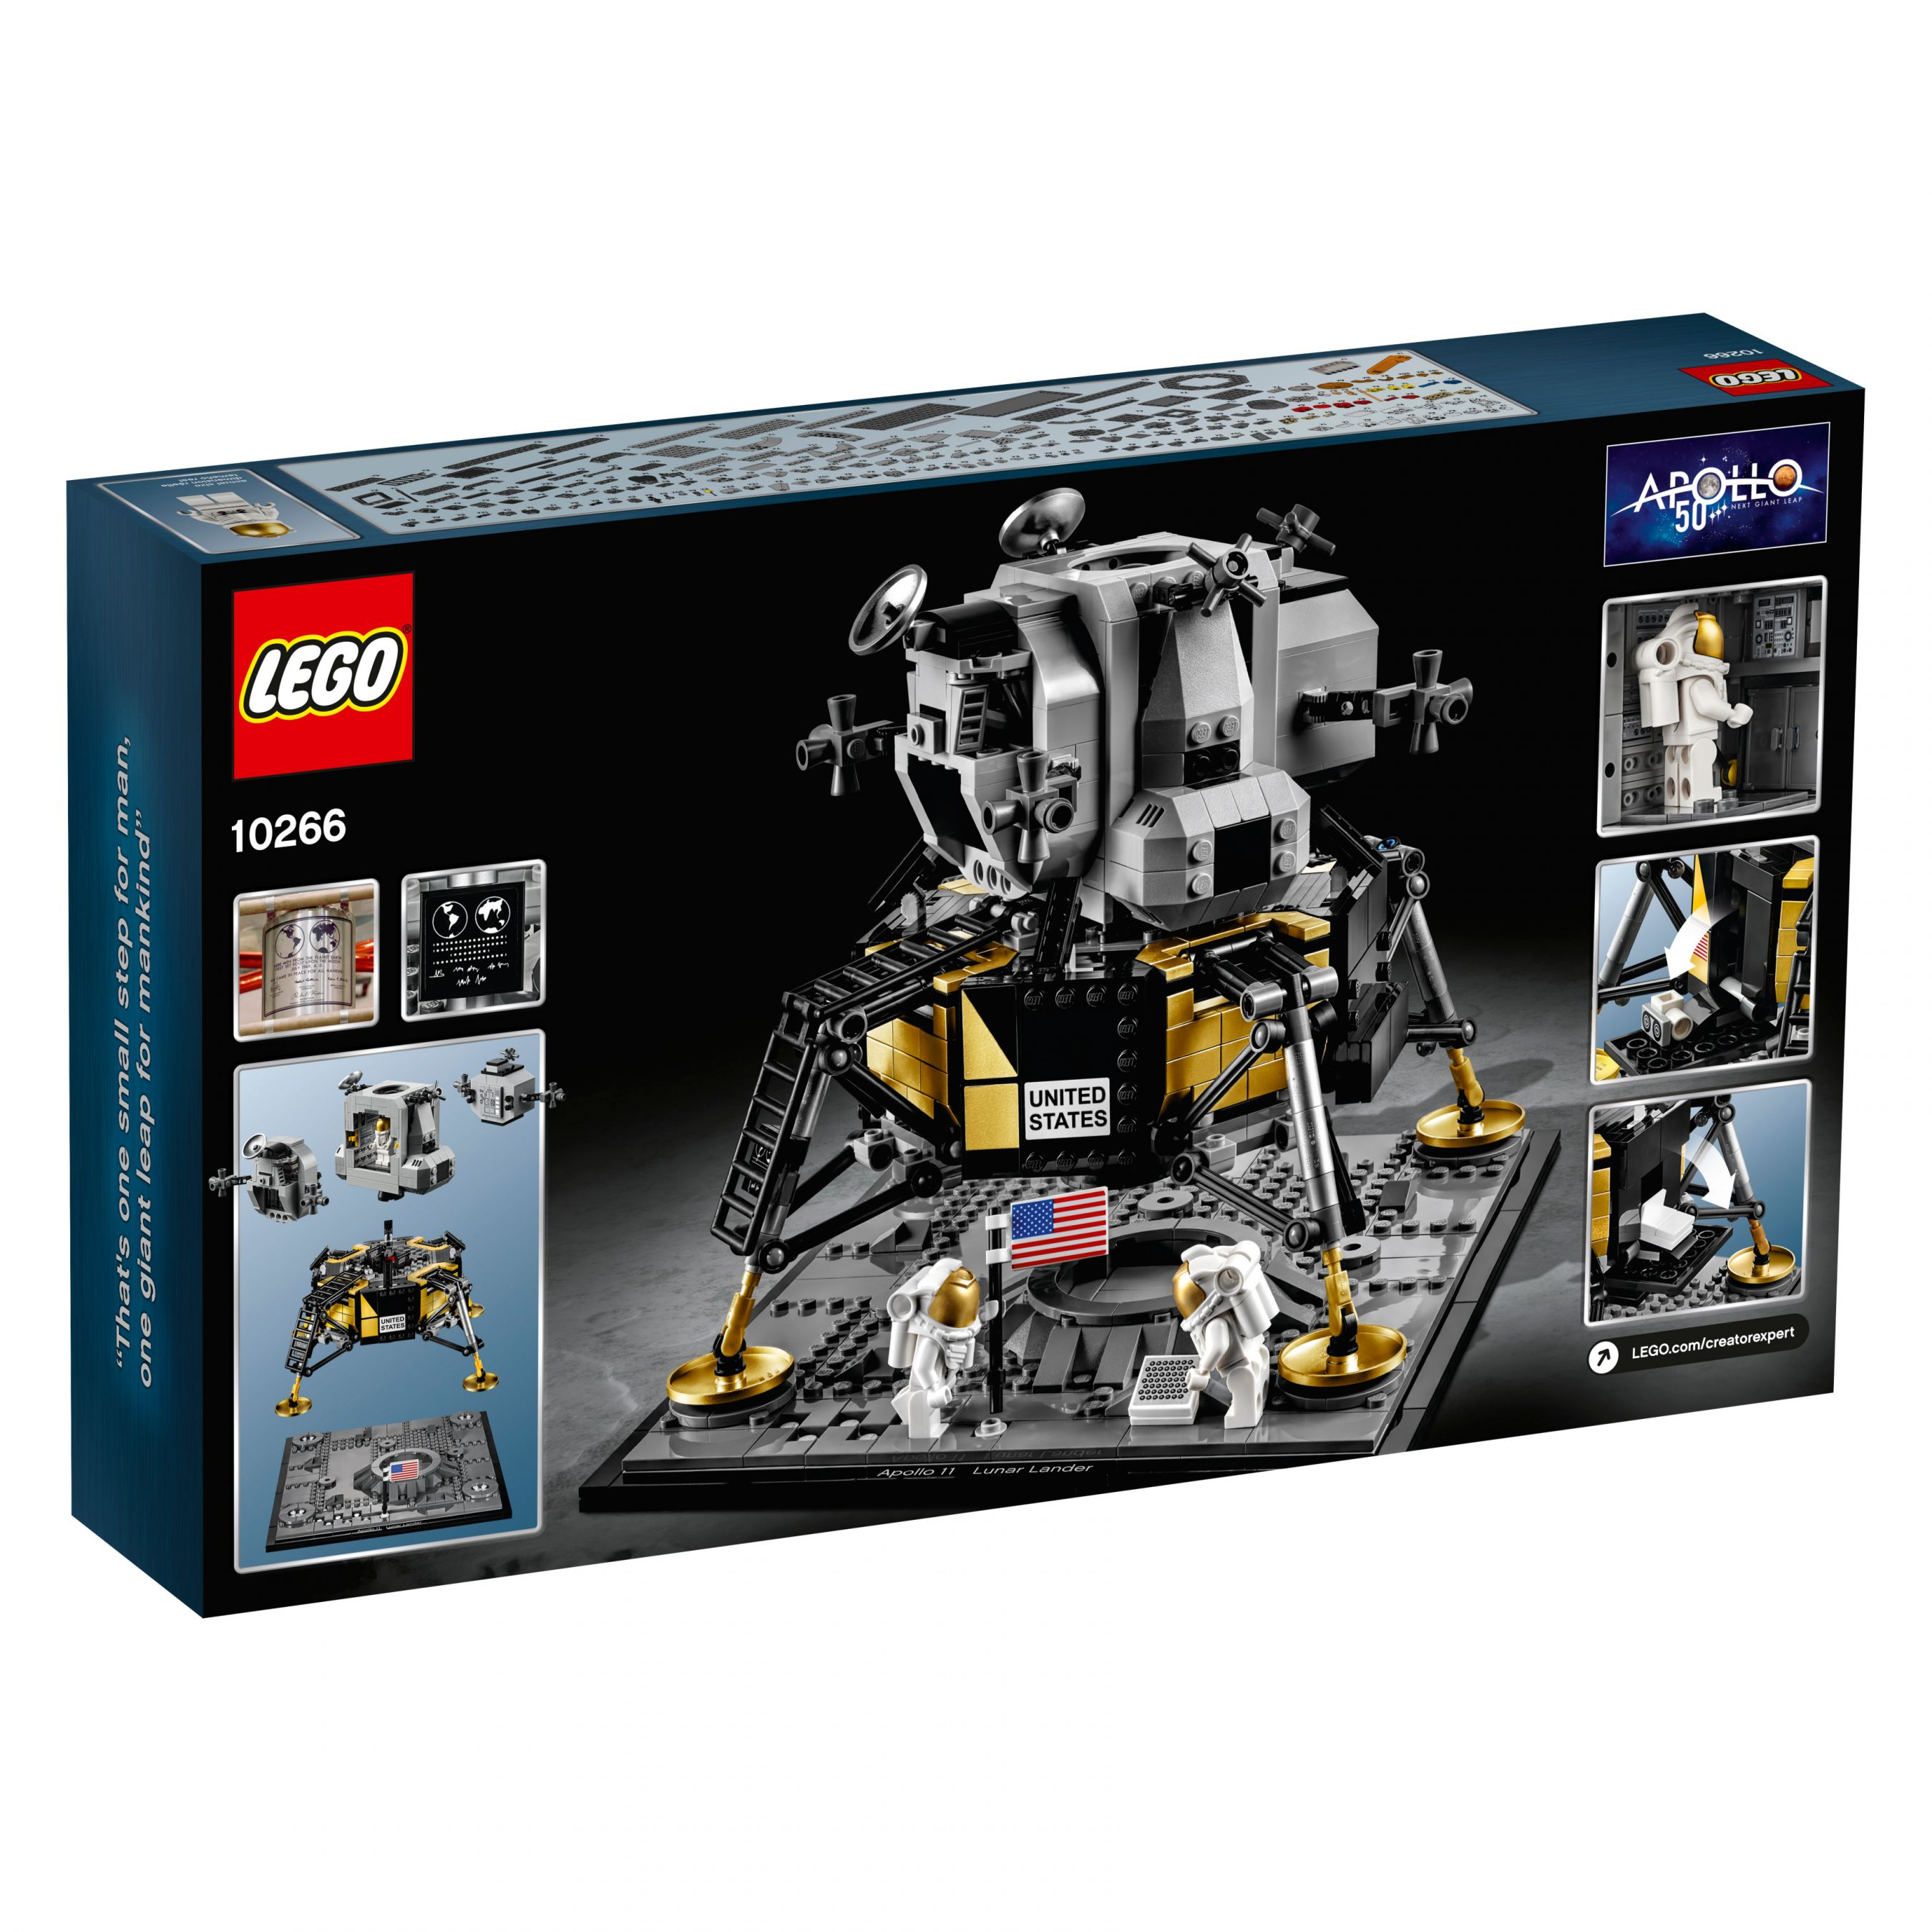 LEGO Advanced Models 10266 NASA Apollo 11 Mondlandefähre LEGO_10266_alt5.jpg